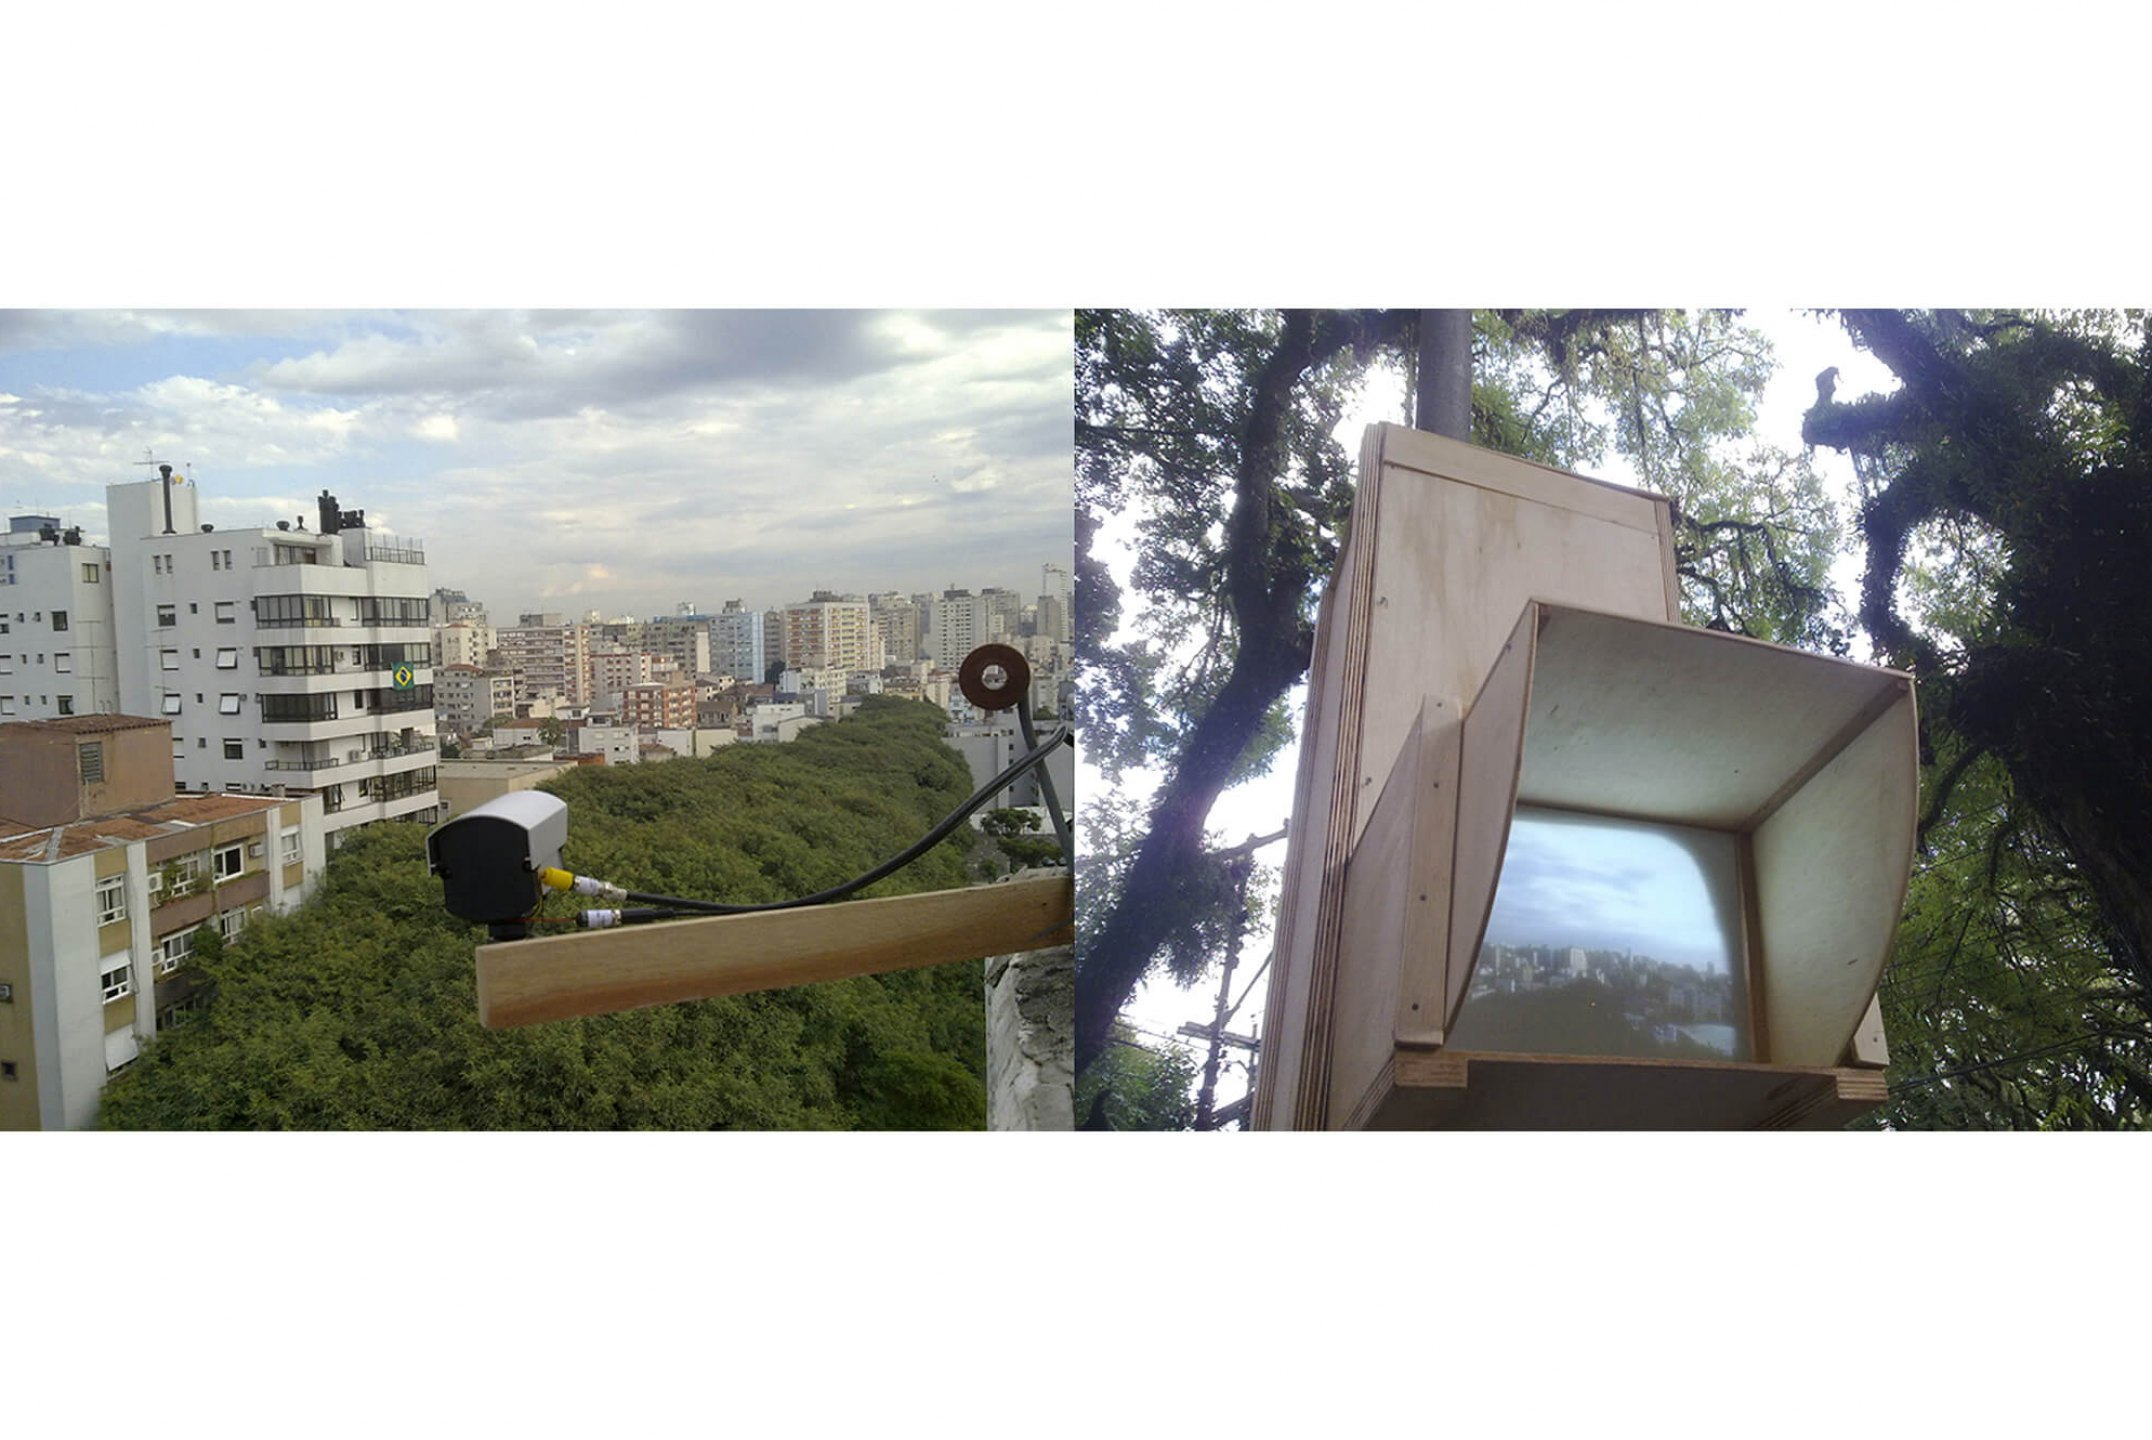 Leticia Ramos, <em>EIXO Z</em>, 2010, urban intervention – video installation, 150 × 50 × 50 cm - Mendes Wood DM